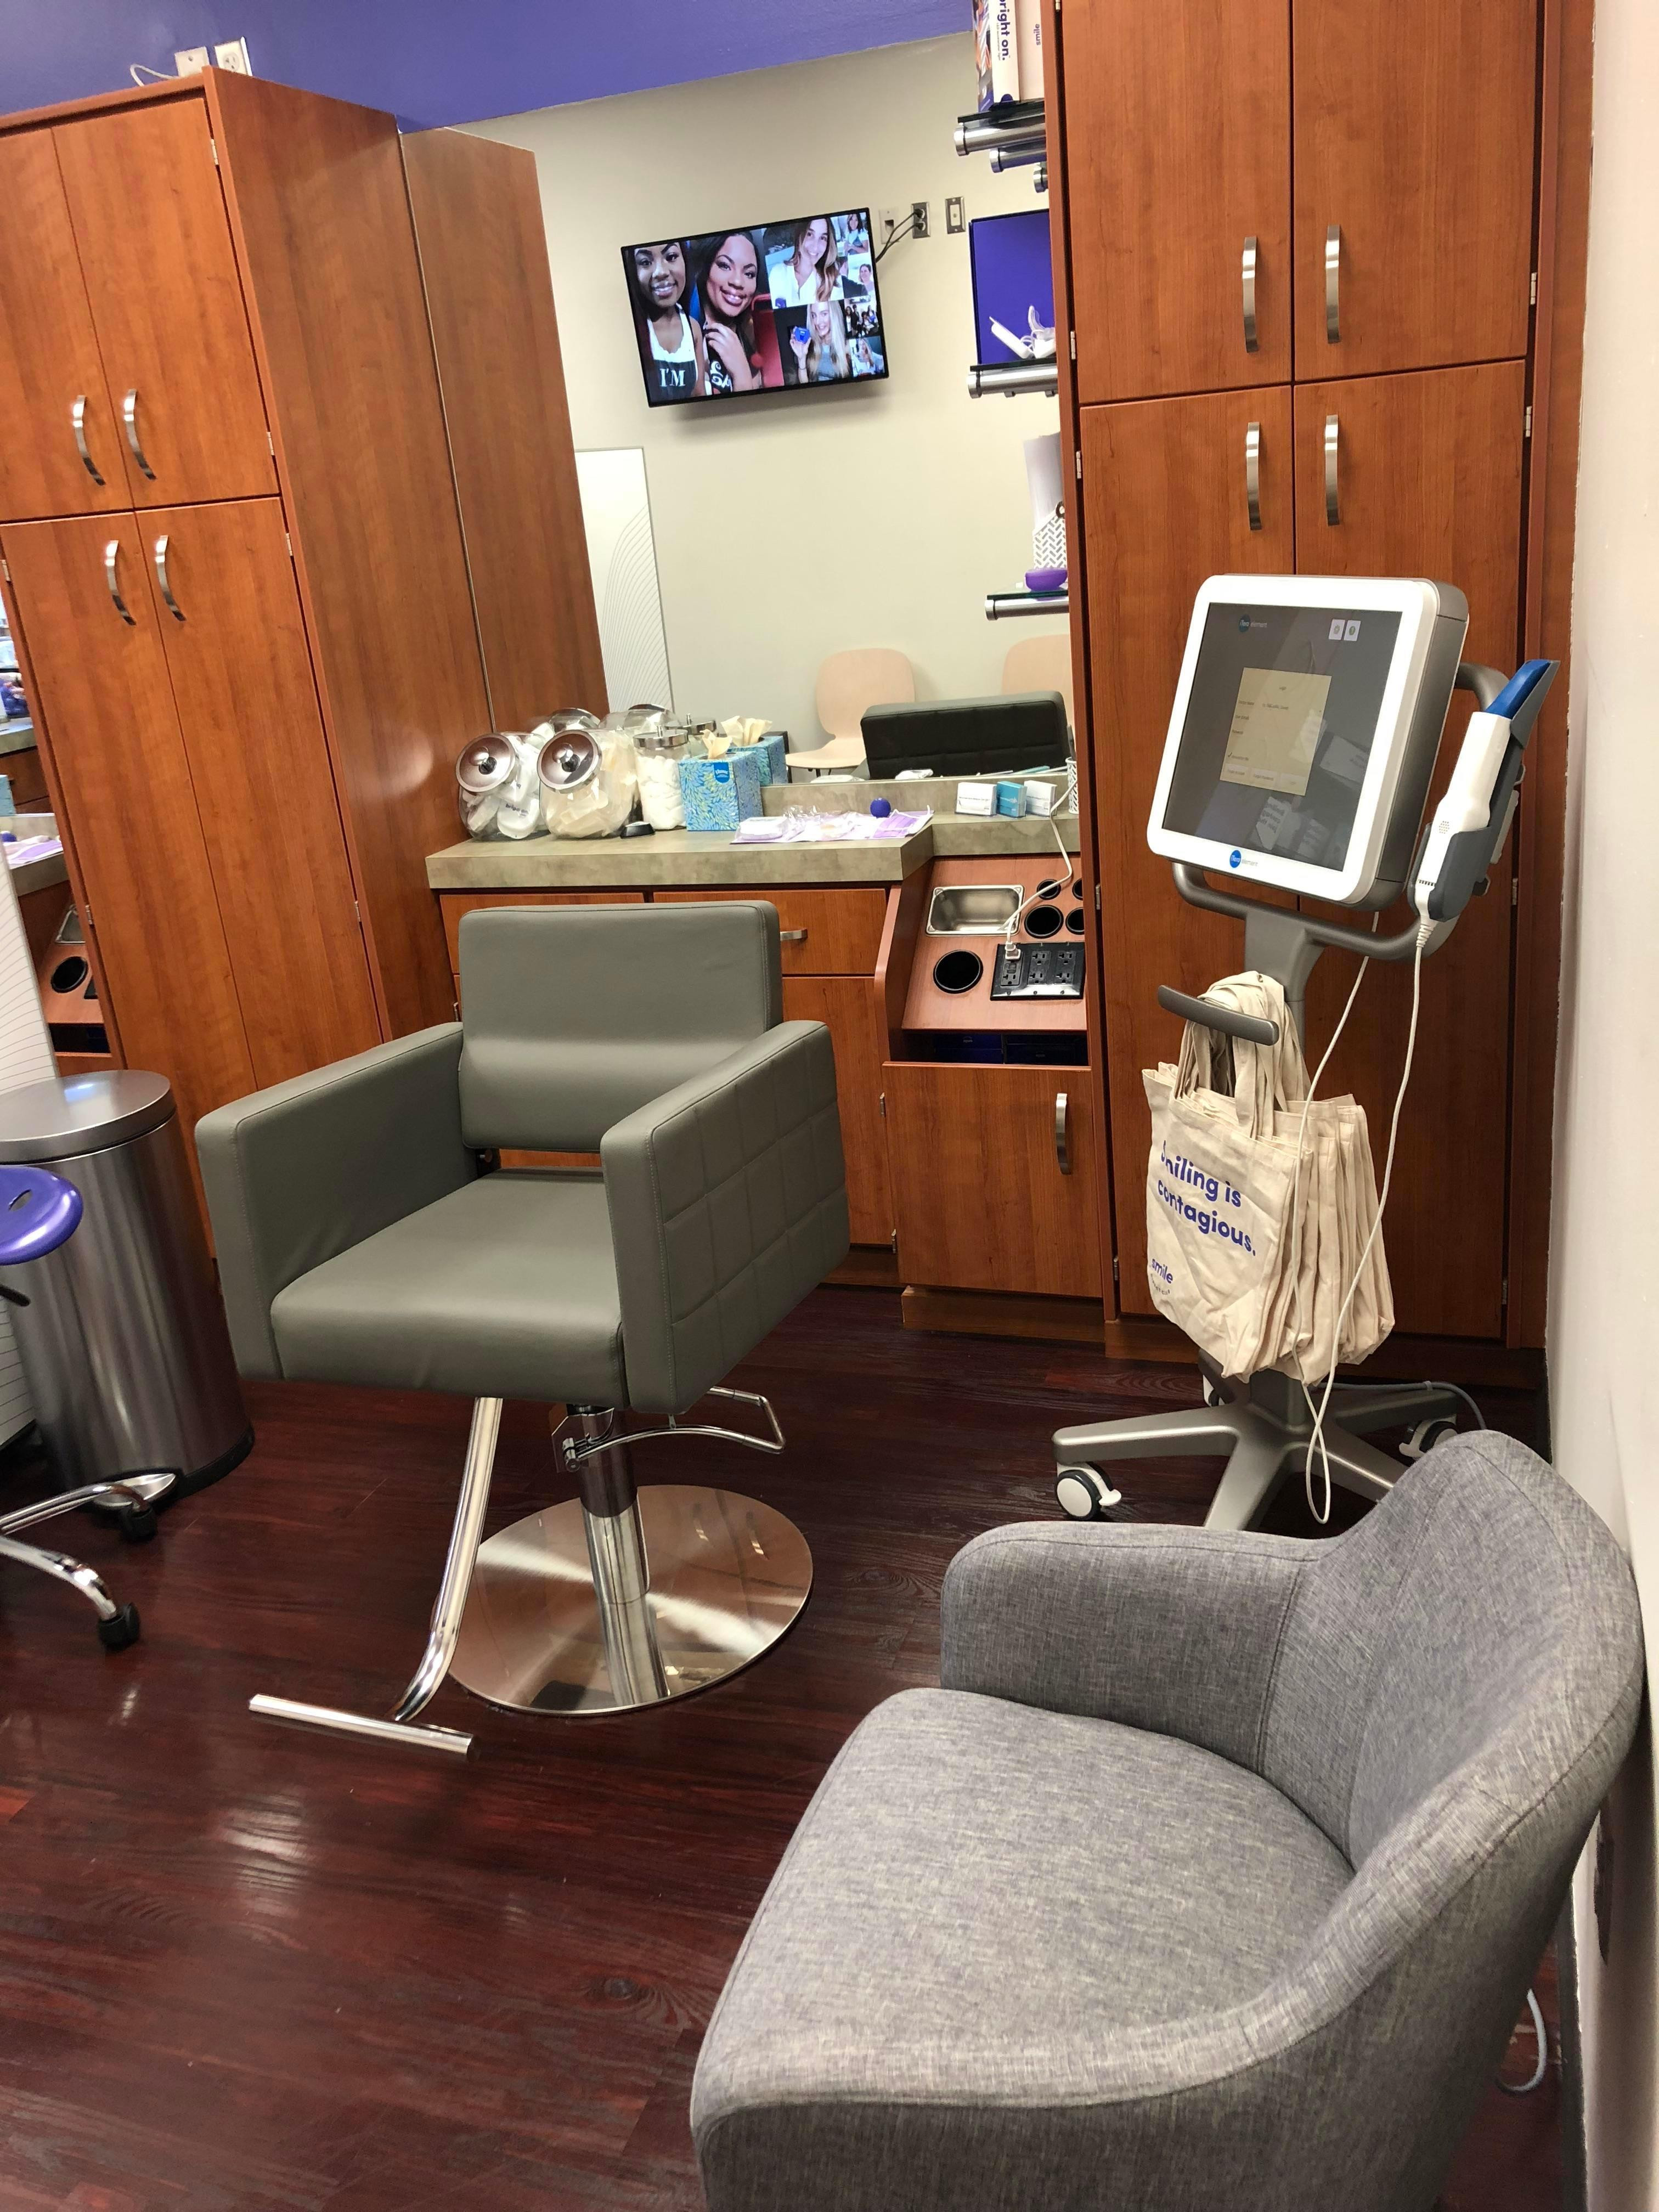 hardwood floor installation tampa of smile direct club 15241 n dale mabry hwy tampa fl medical supplies intended for smile direct club 15241 n dale mabry hwy tampa fl medical supplies mapquest